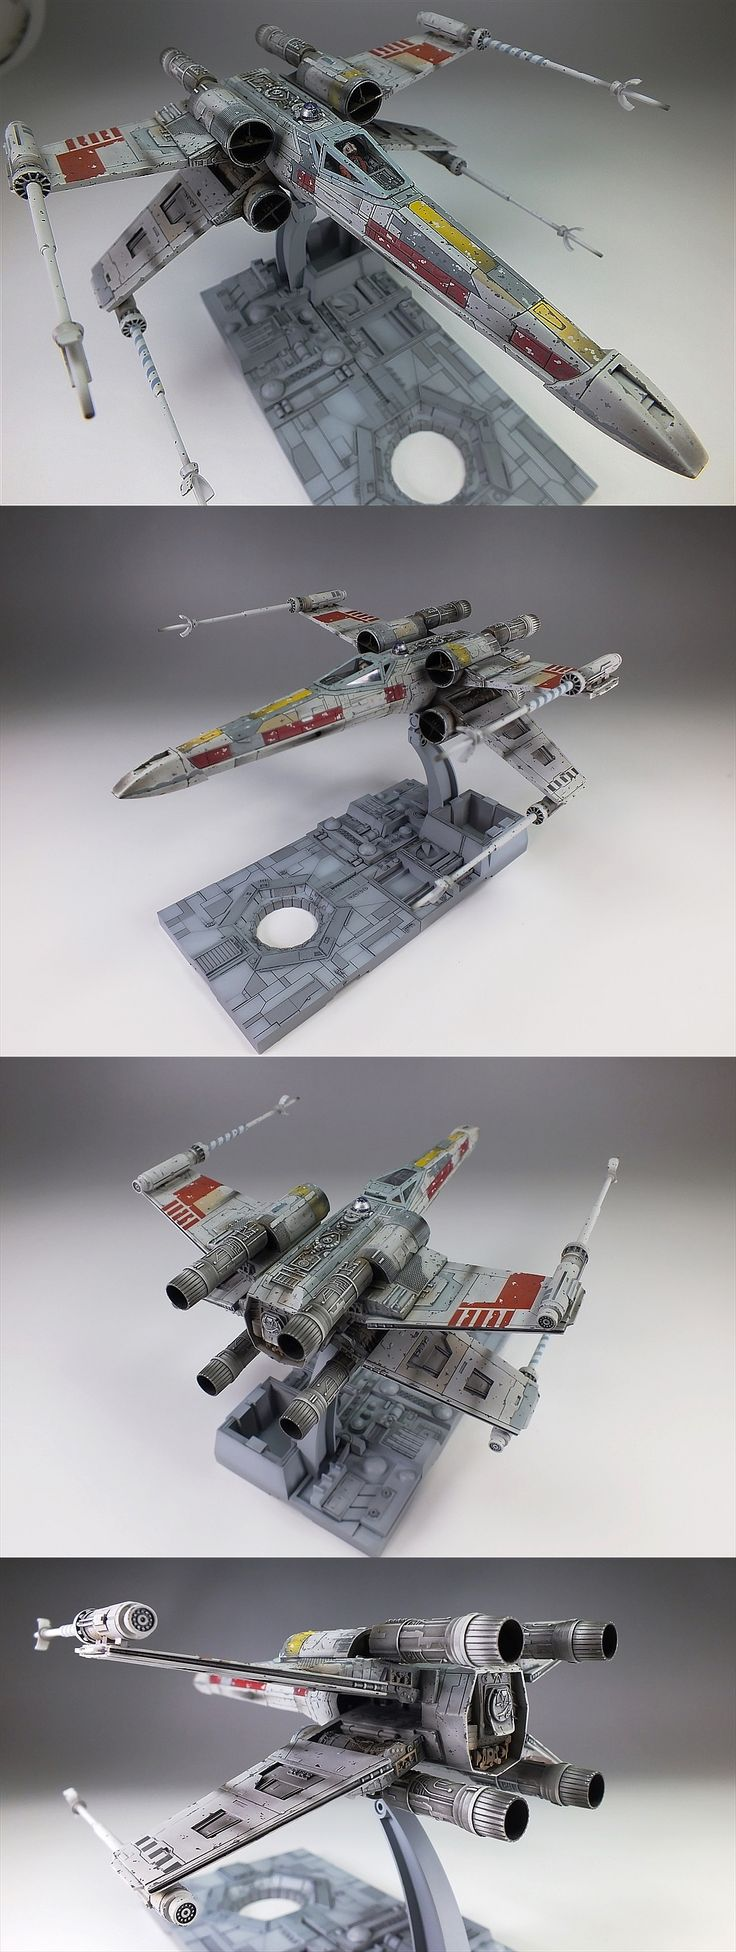 Bandai x Star Wars 1/72 X-Wing Starfighter: Amazing Work by oyoshicity. Full Photoreview Hi Res Images | GUNJAP